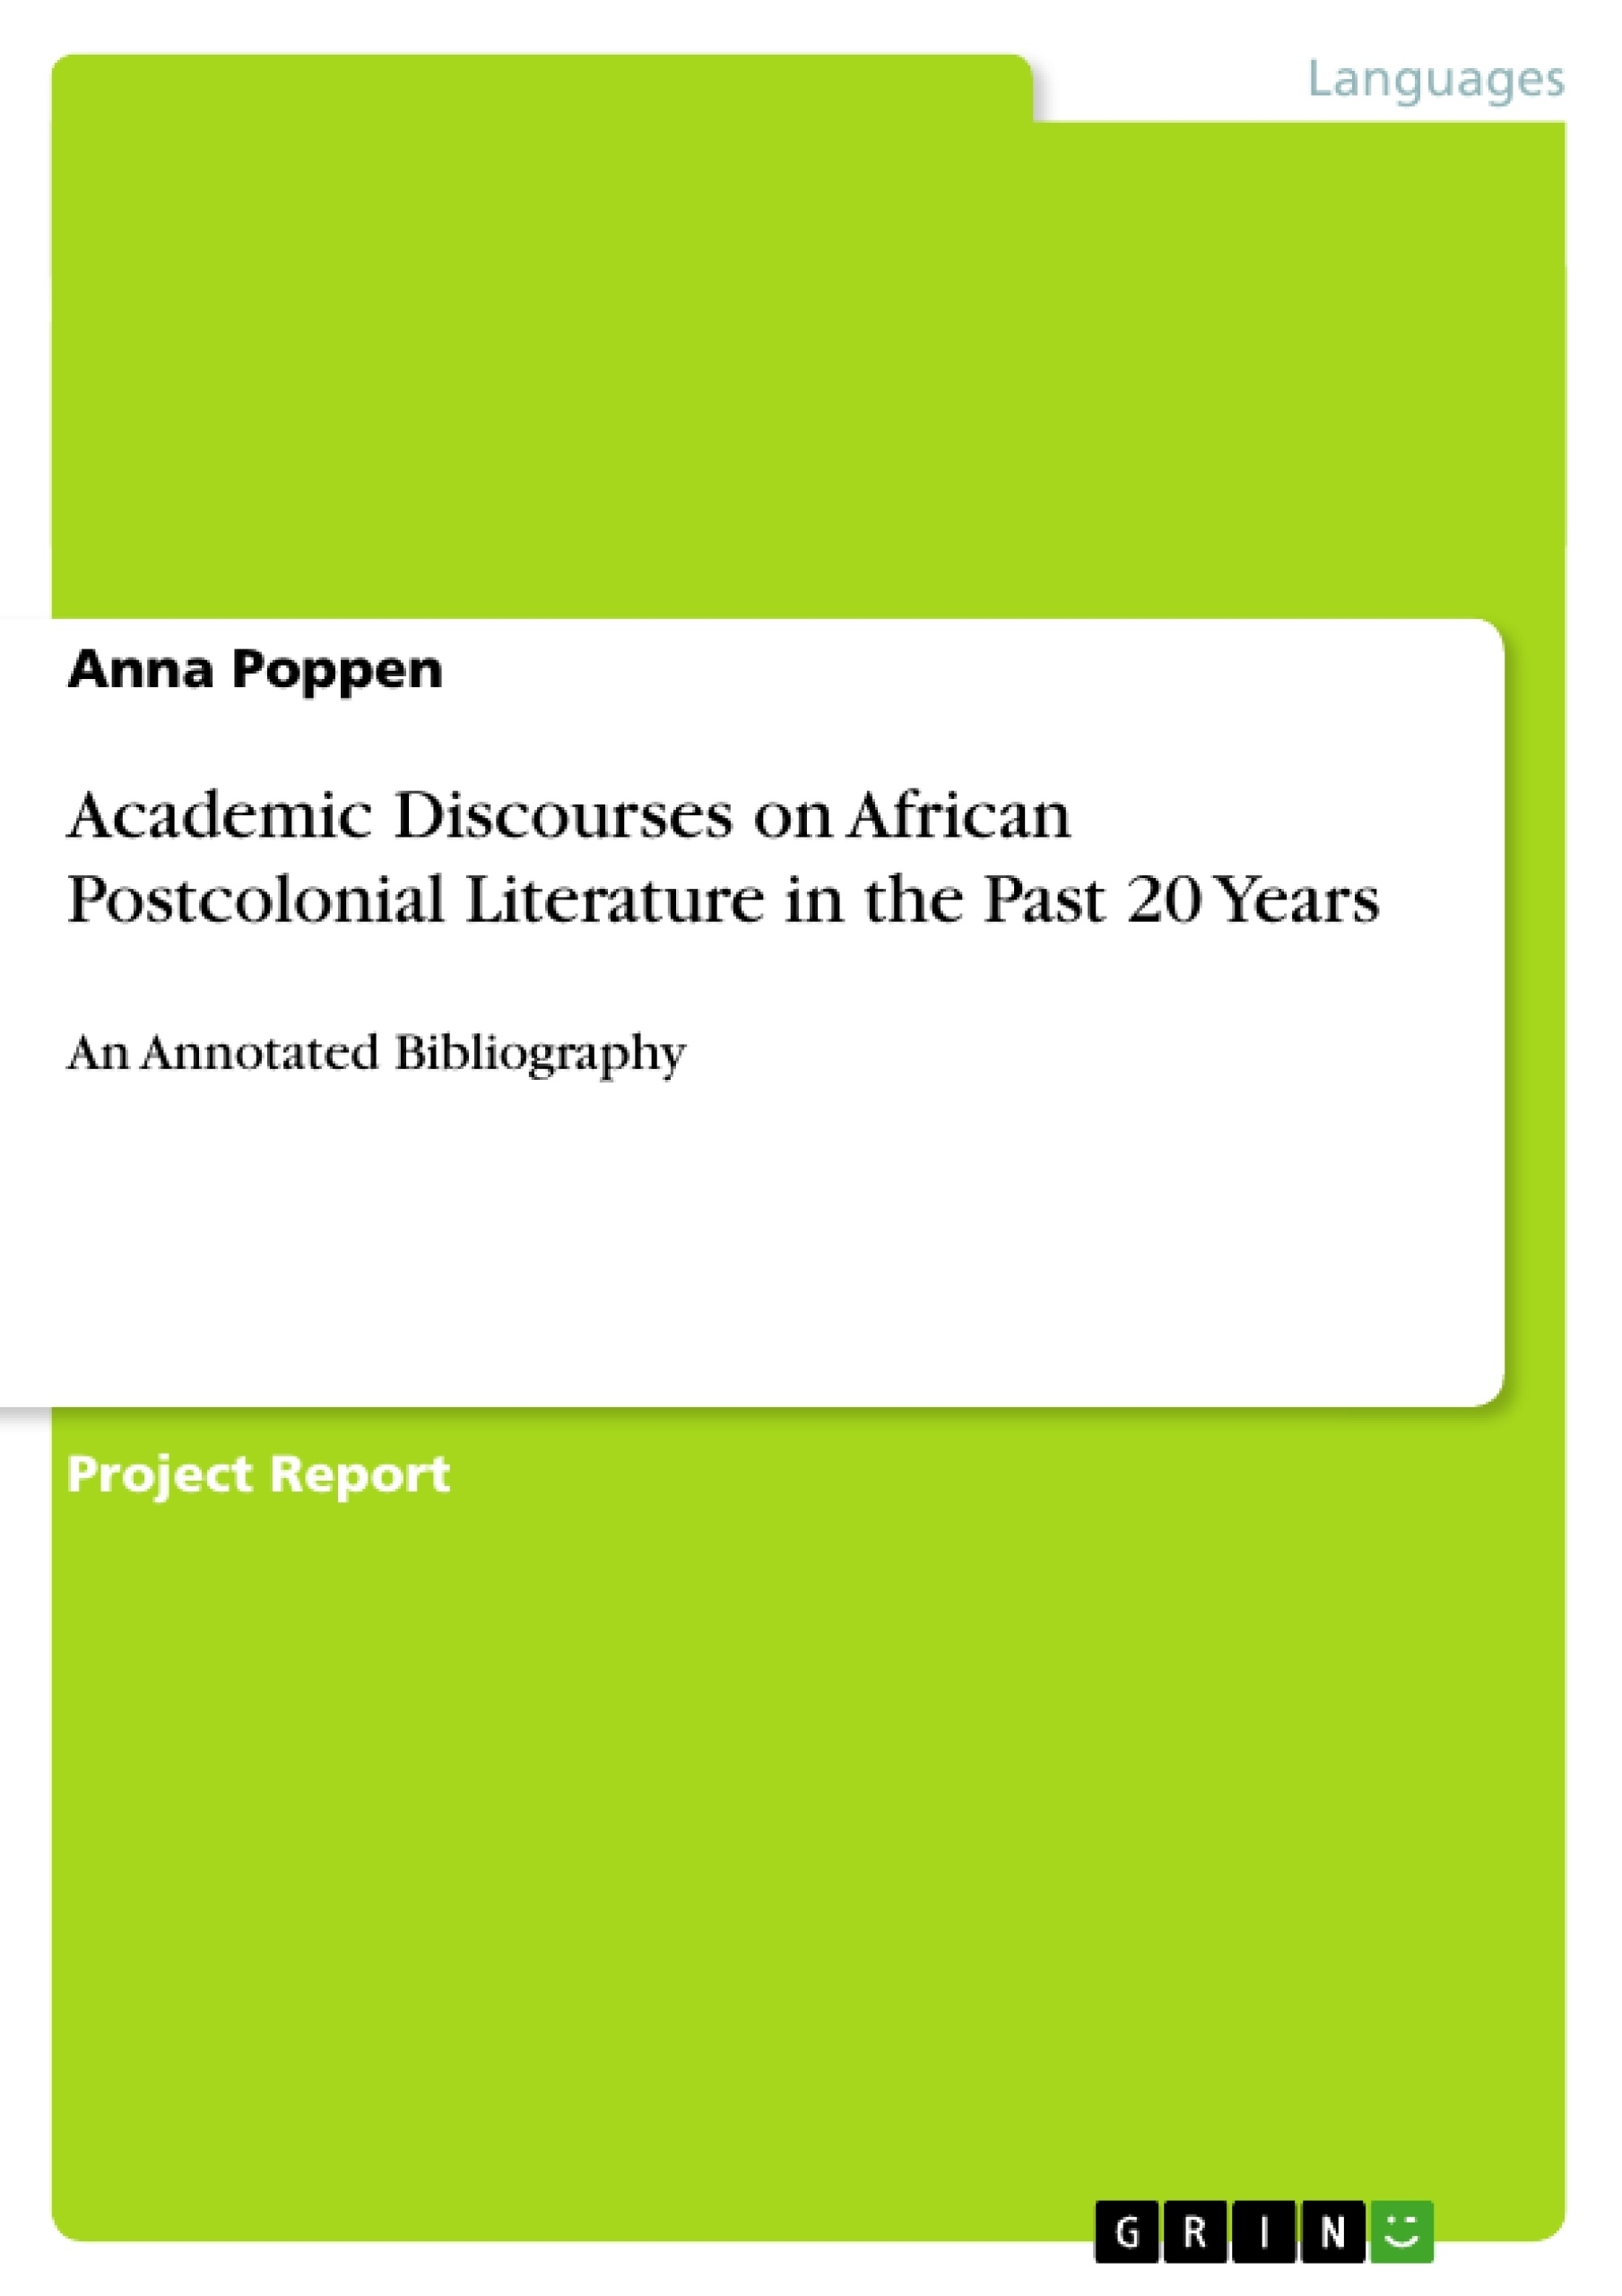 GRIN - Academic Discourses on African Postcolonial Literature in the Past  20 Years